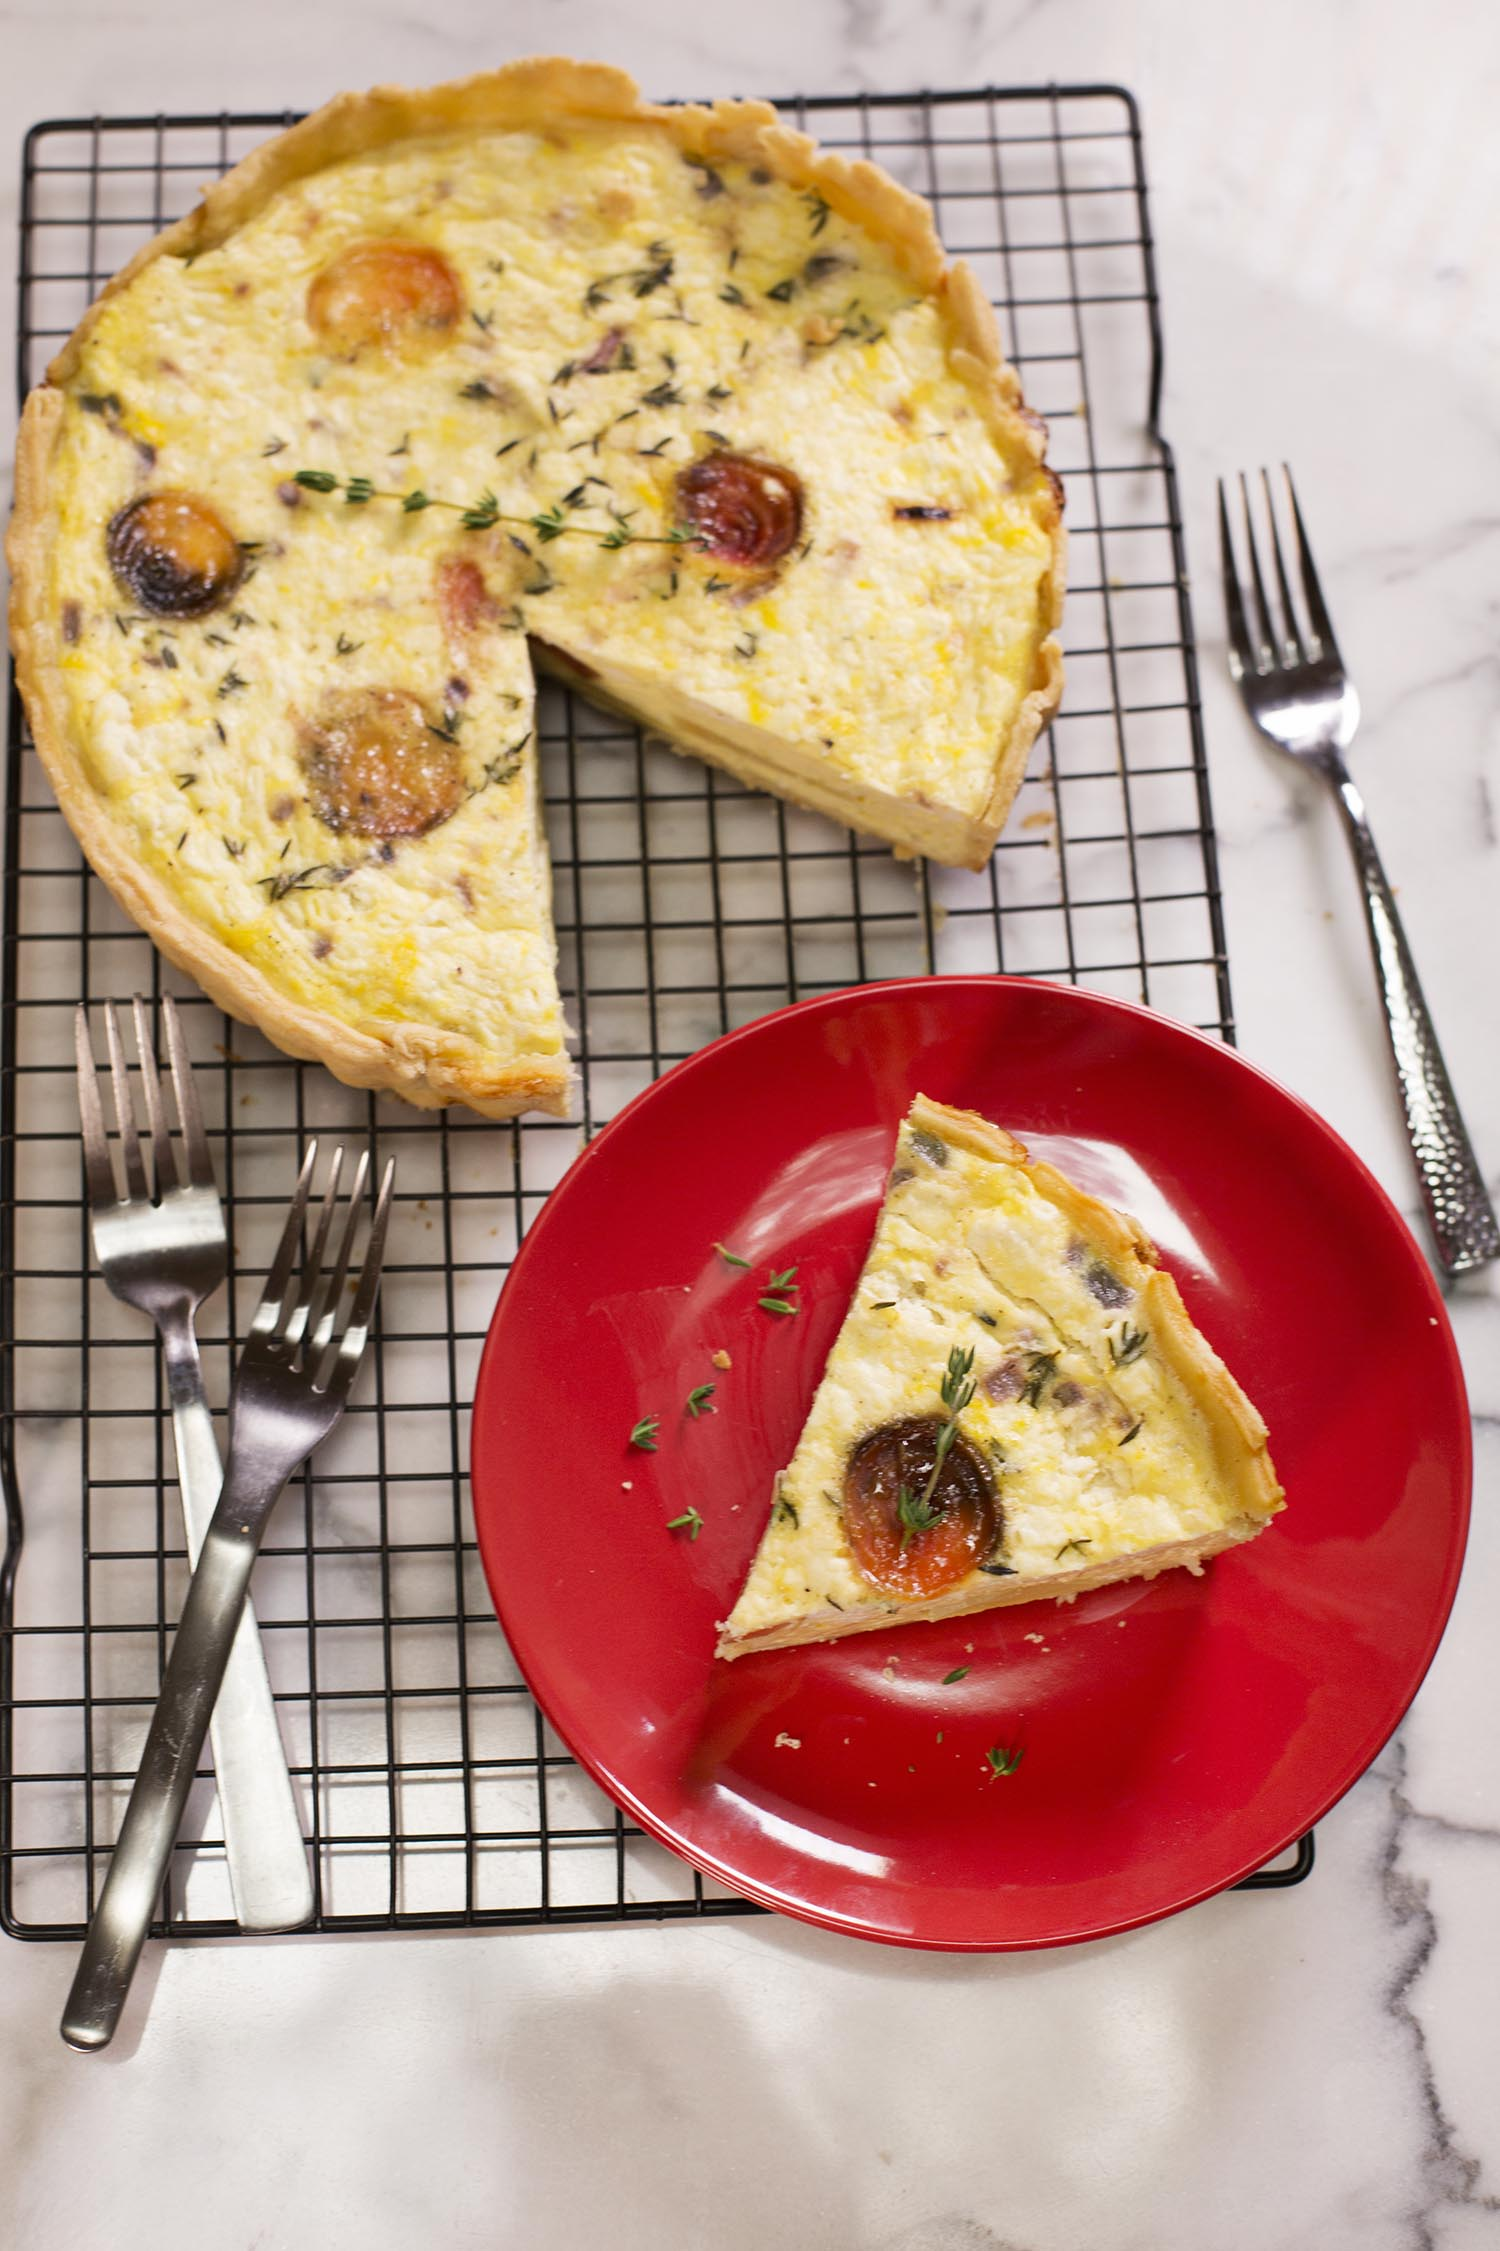 Beet, Thyme, and Goat Cheese Quiche